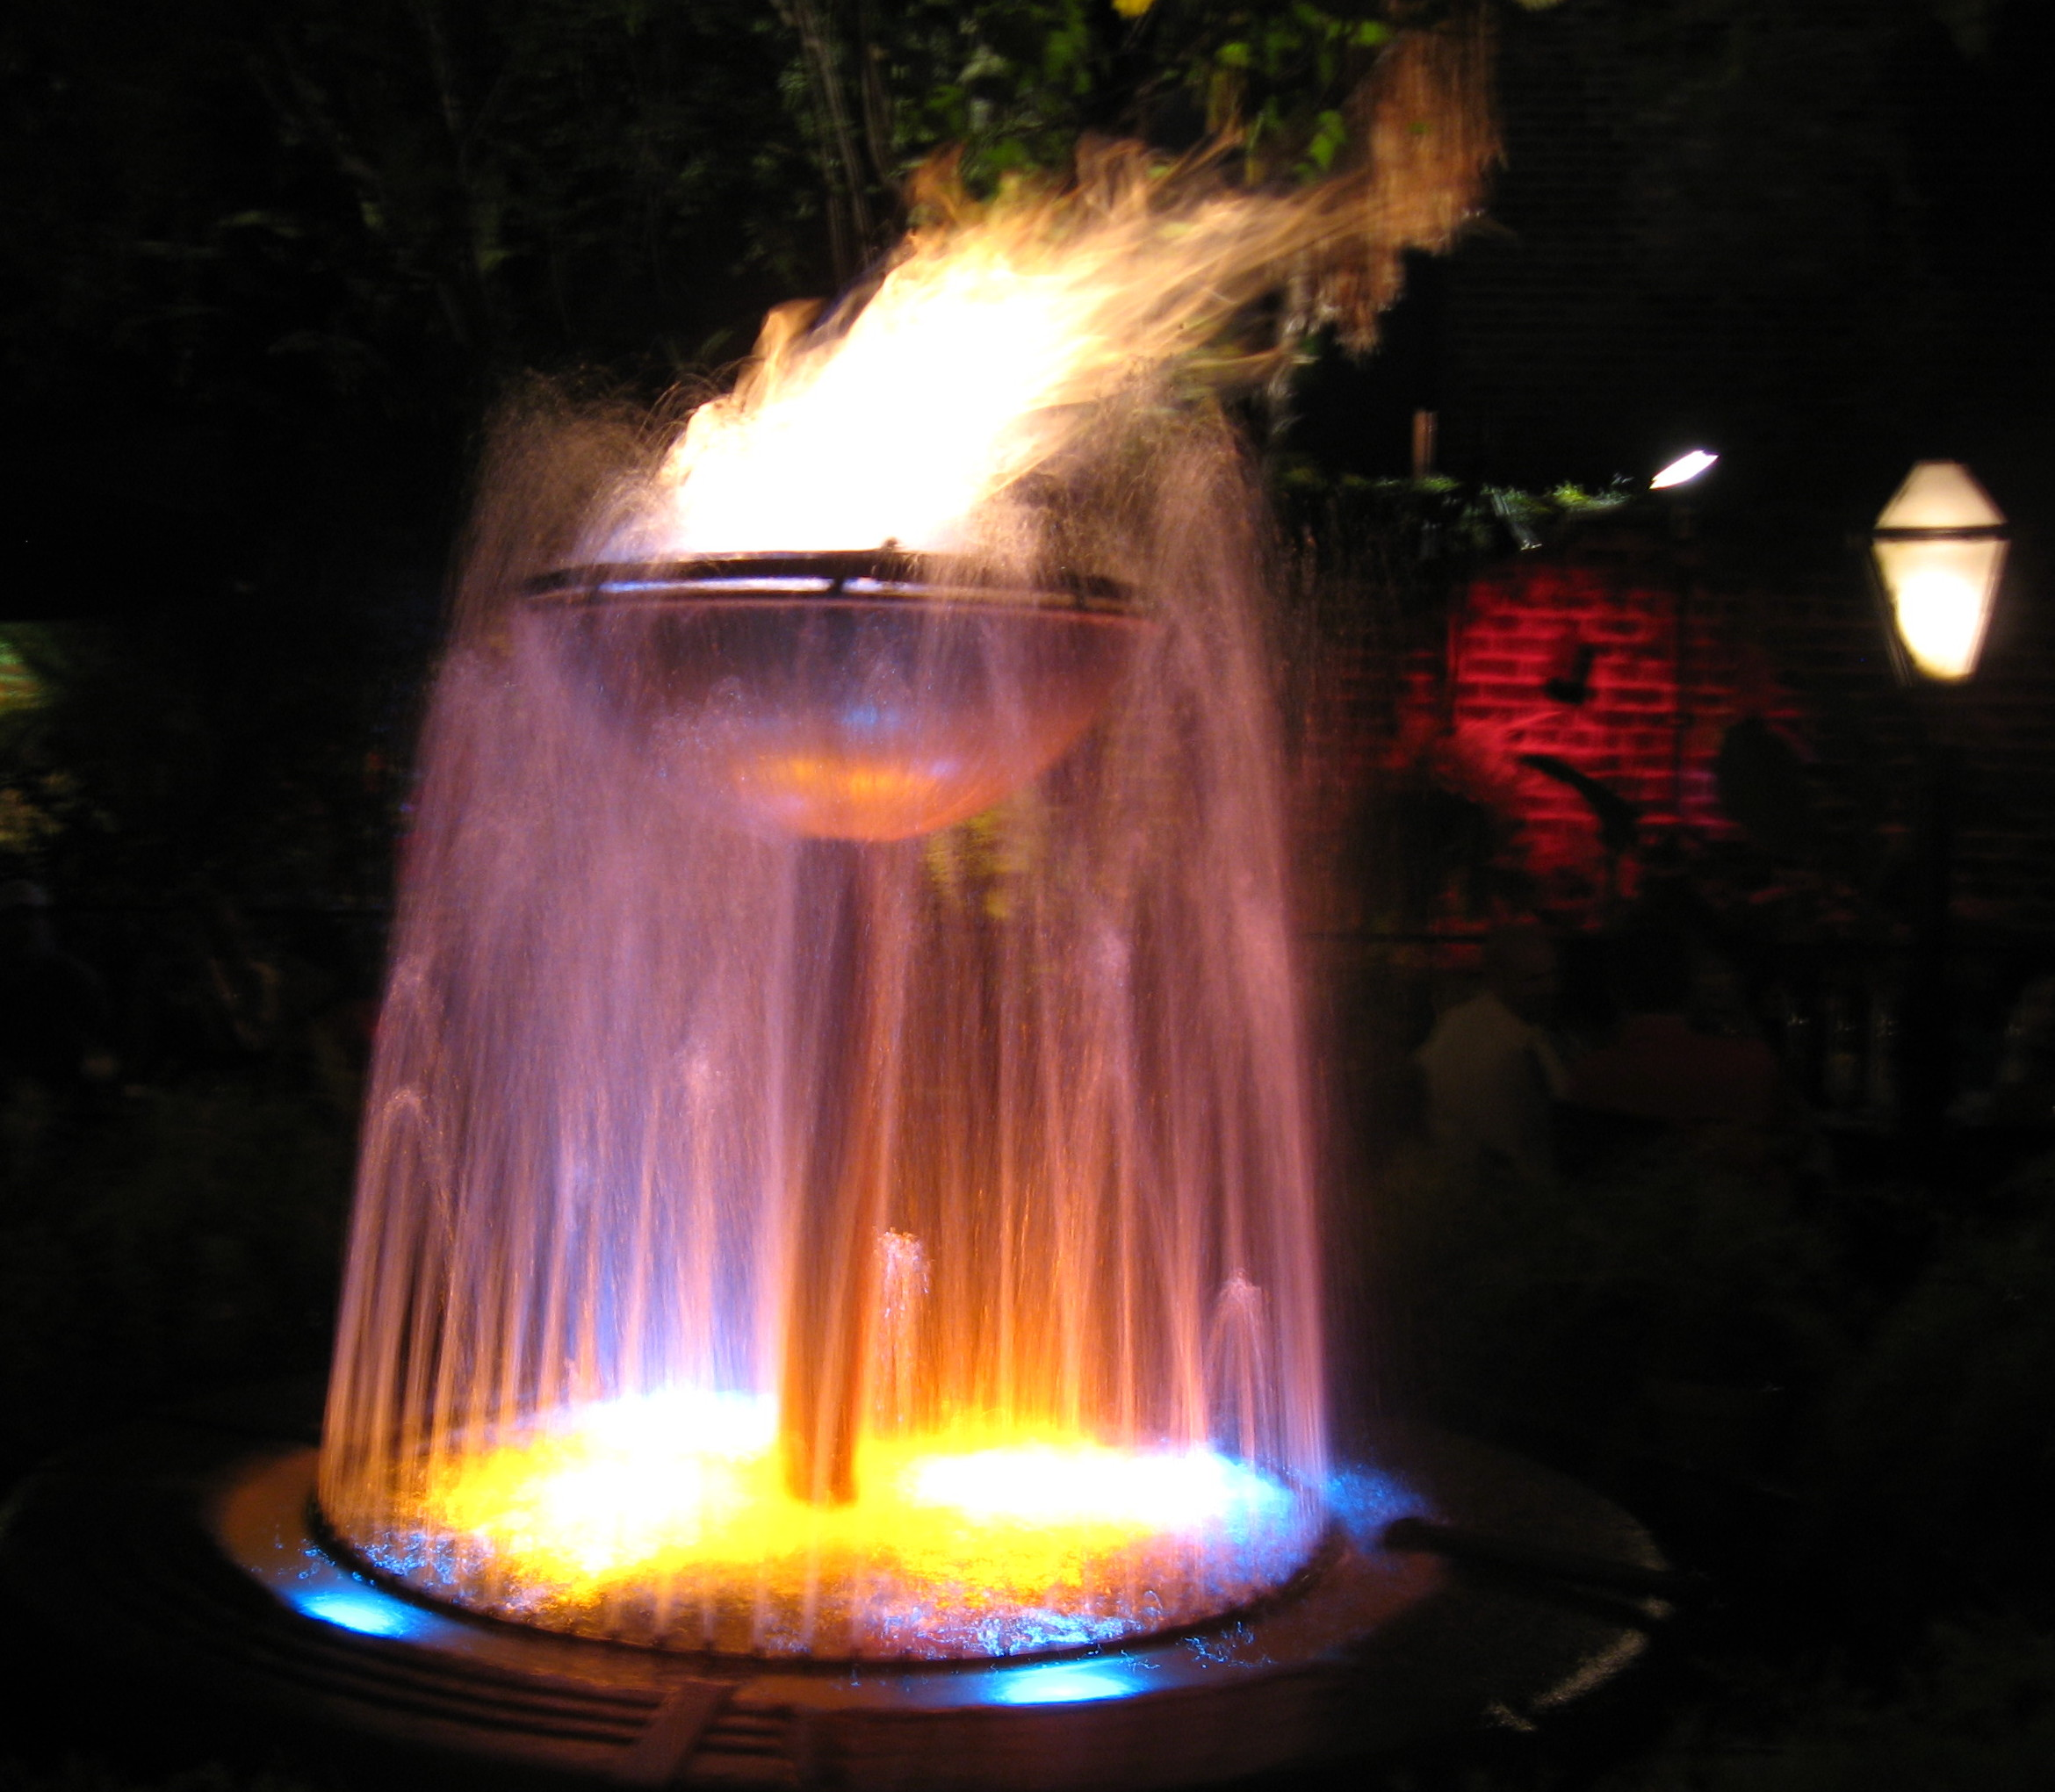 Fire fountain lamentations on chemistry for Fire and water features